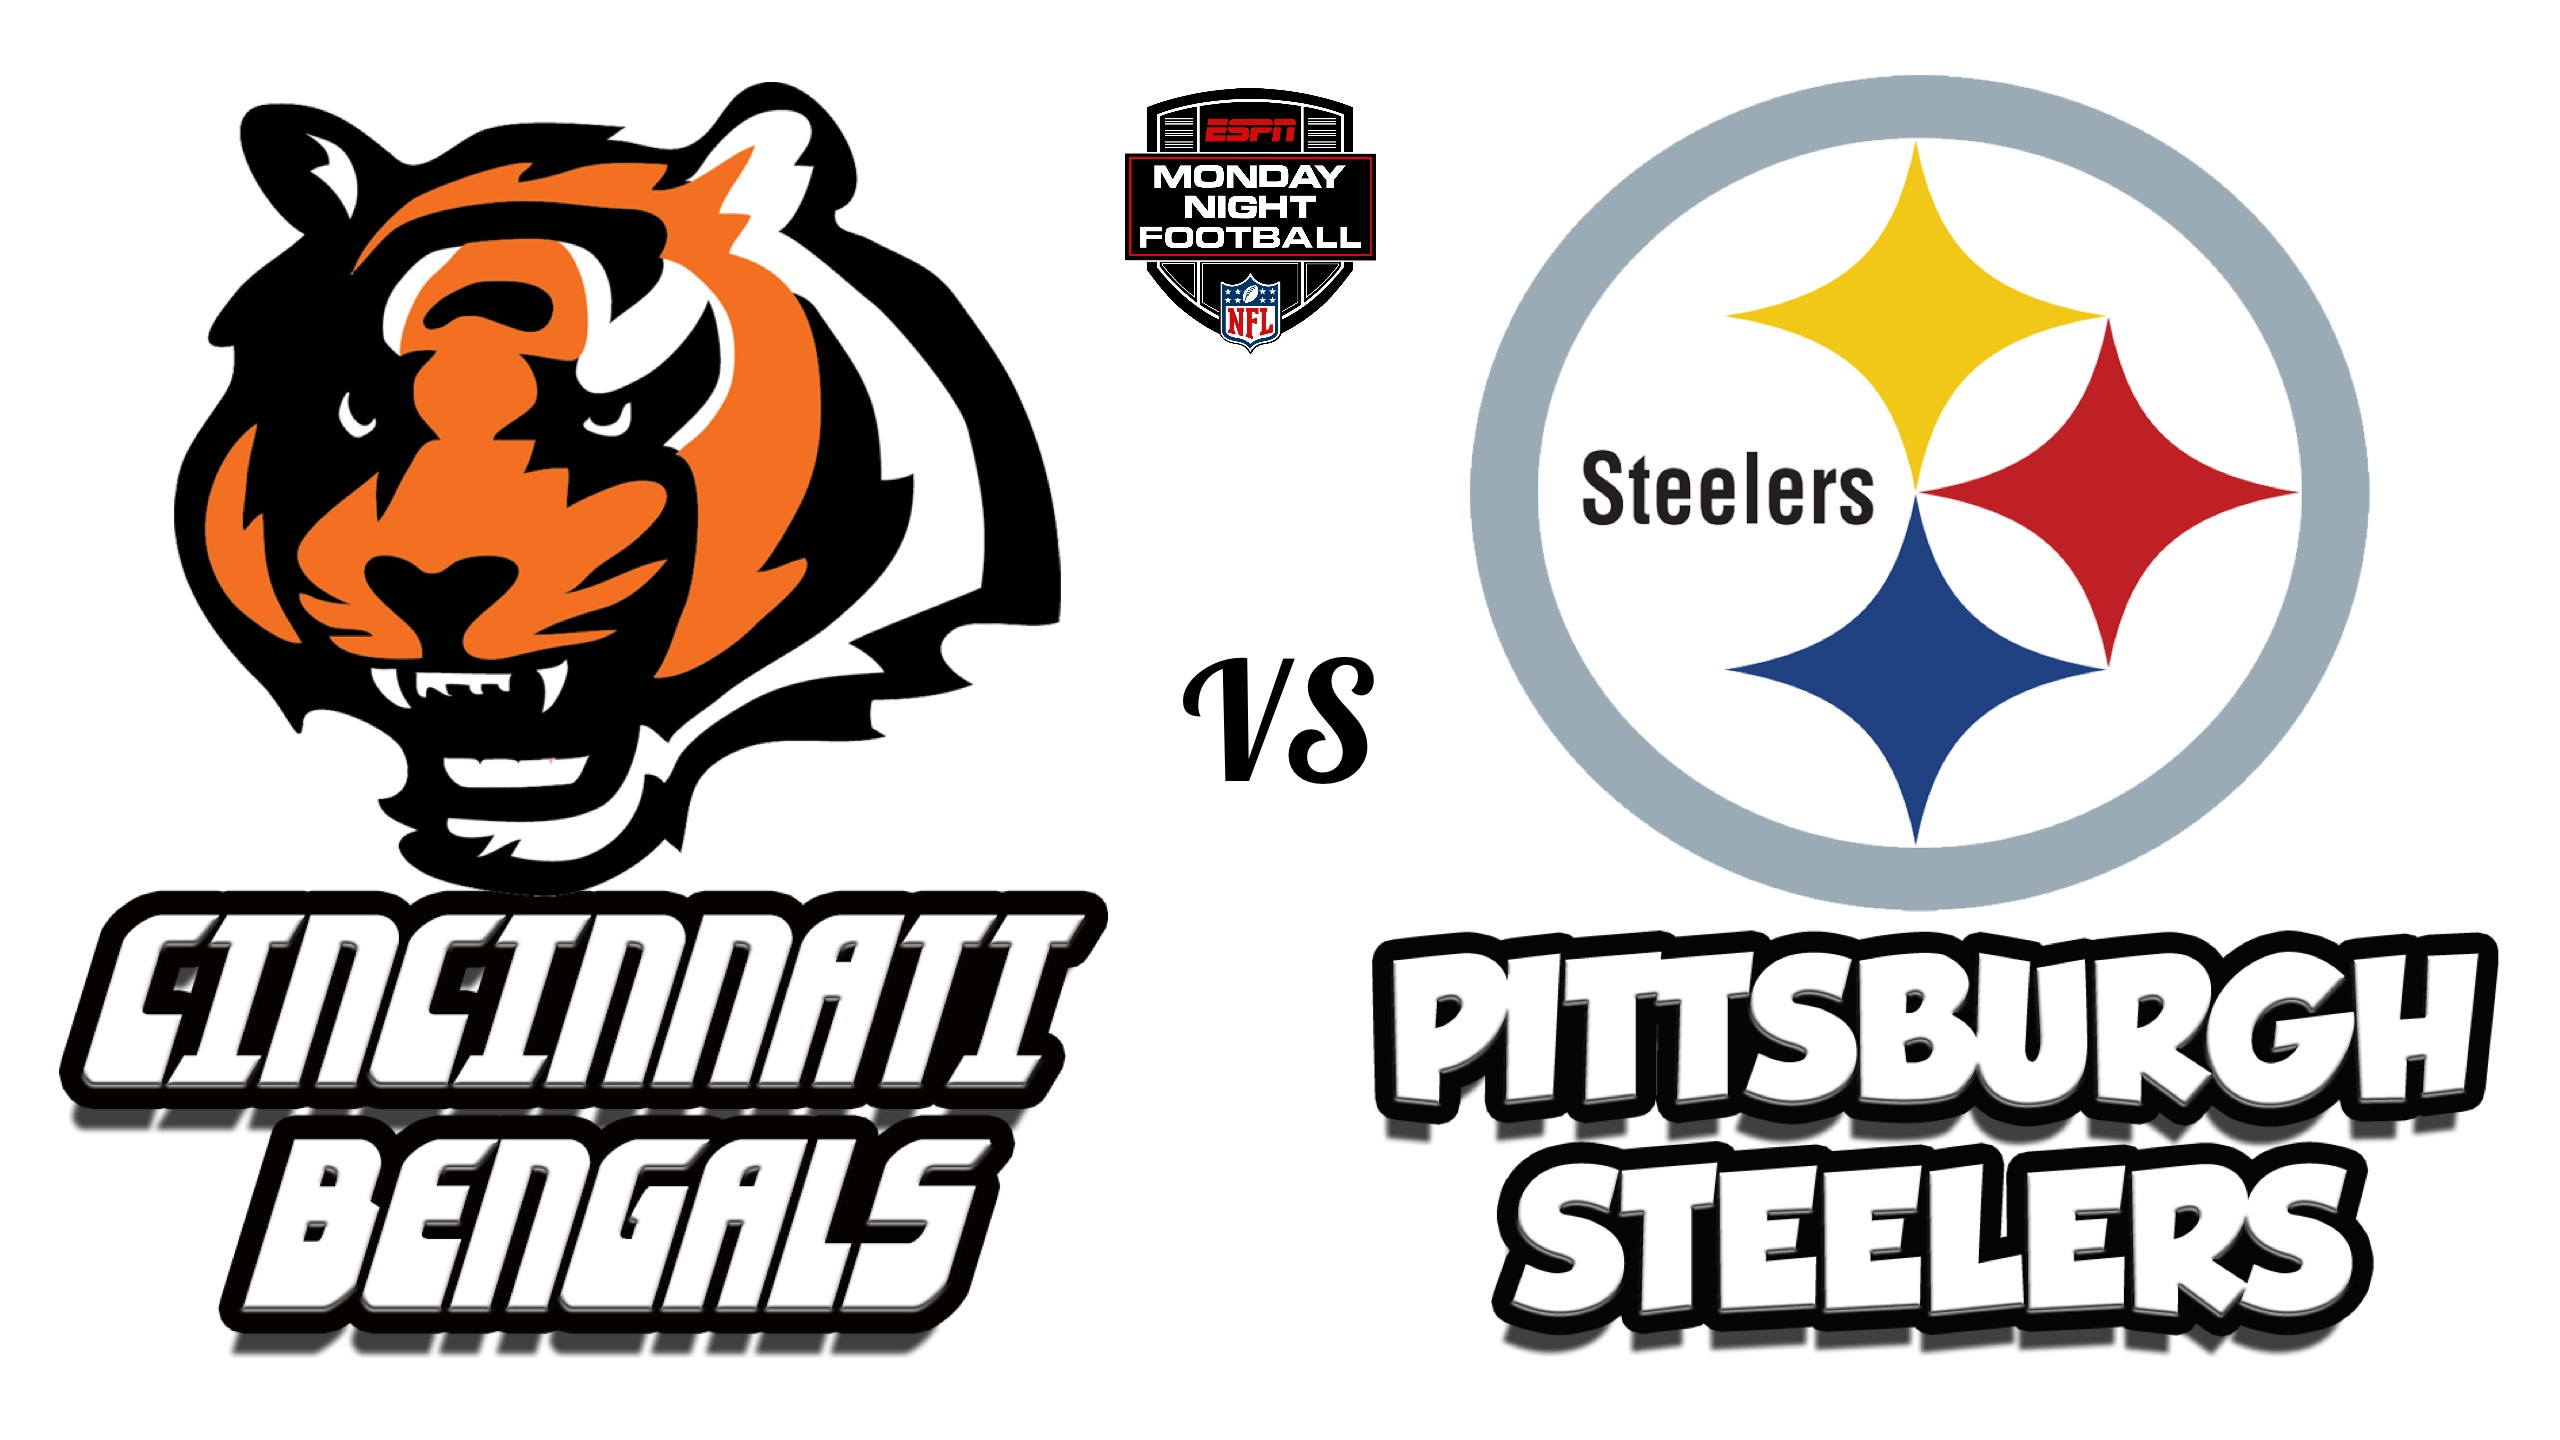 2560x1440 Mnf Bengals Vs Steelers Nfl In London